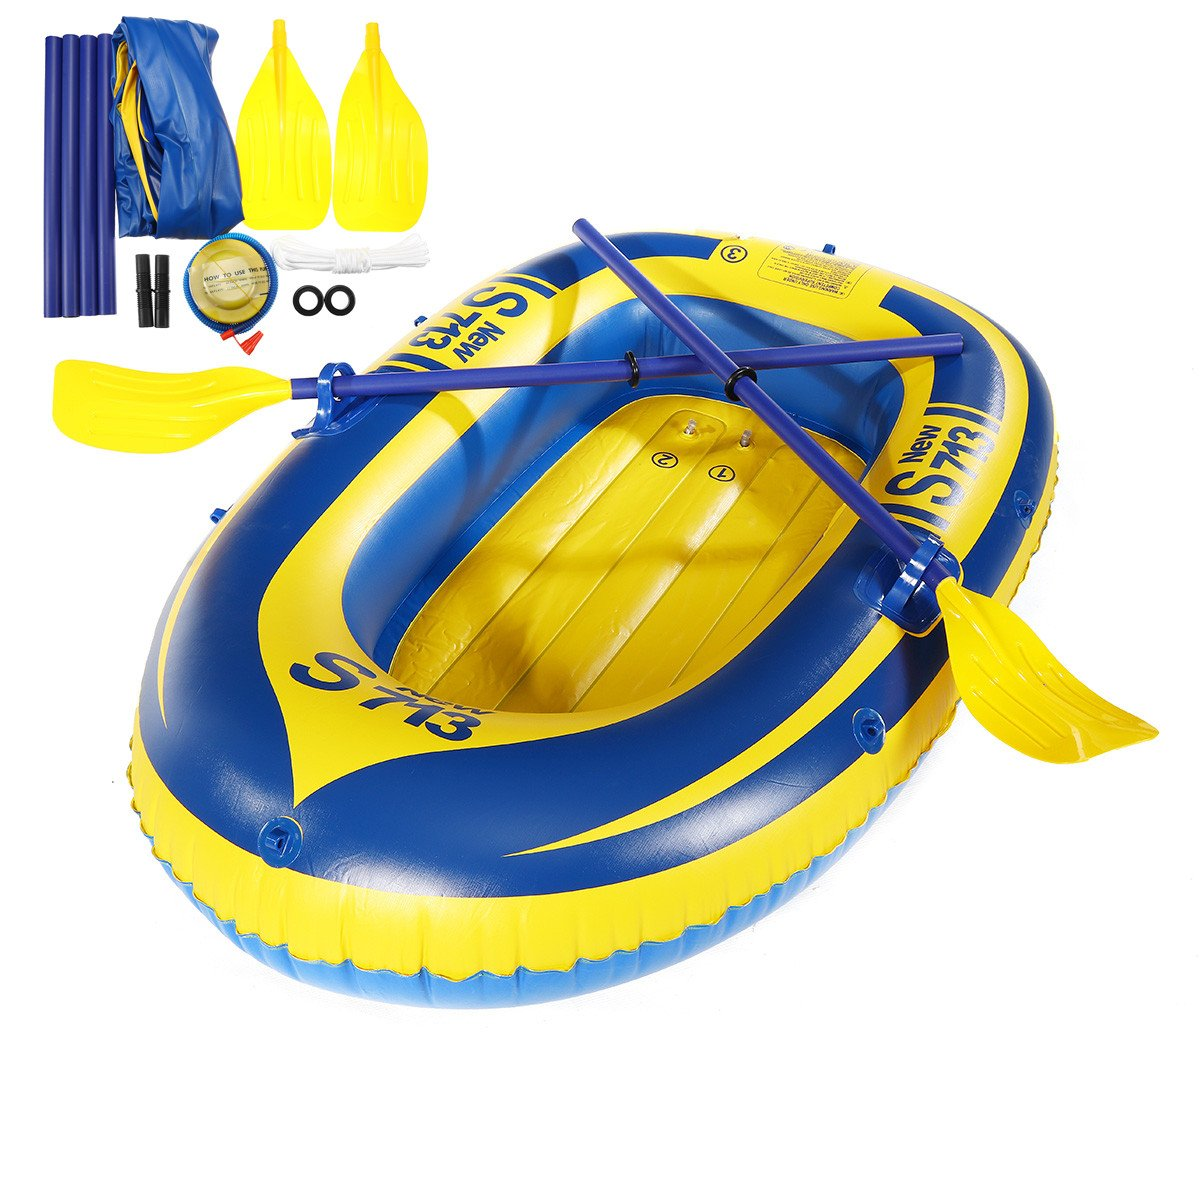 Slimerence Inflatable Boat Set, 1-Person Fishing Swimming Water Sports Inflatable Boat Kayak by Slimerence